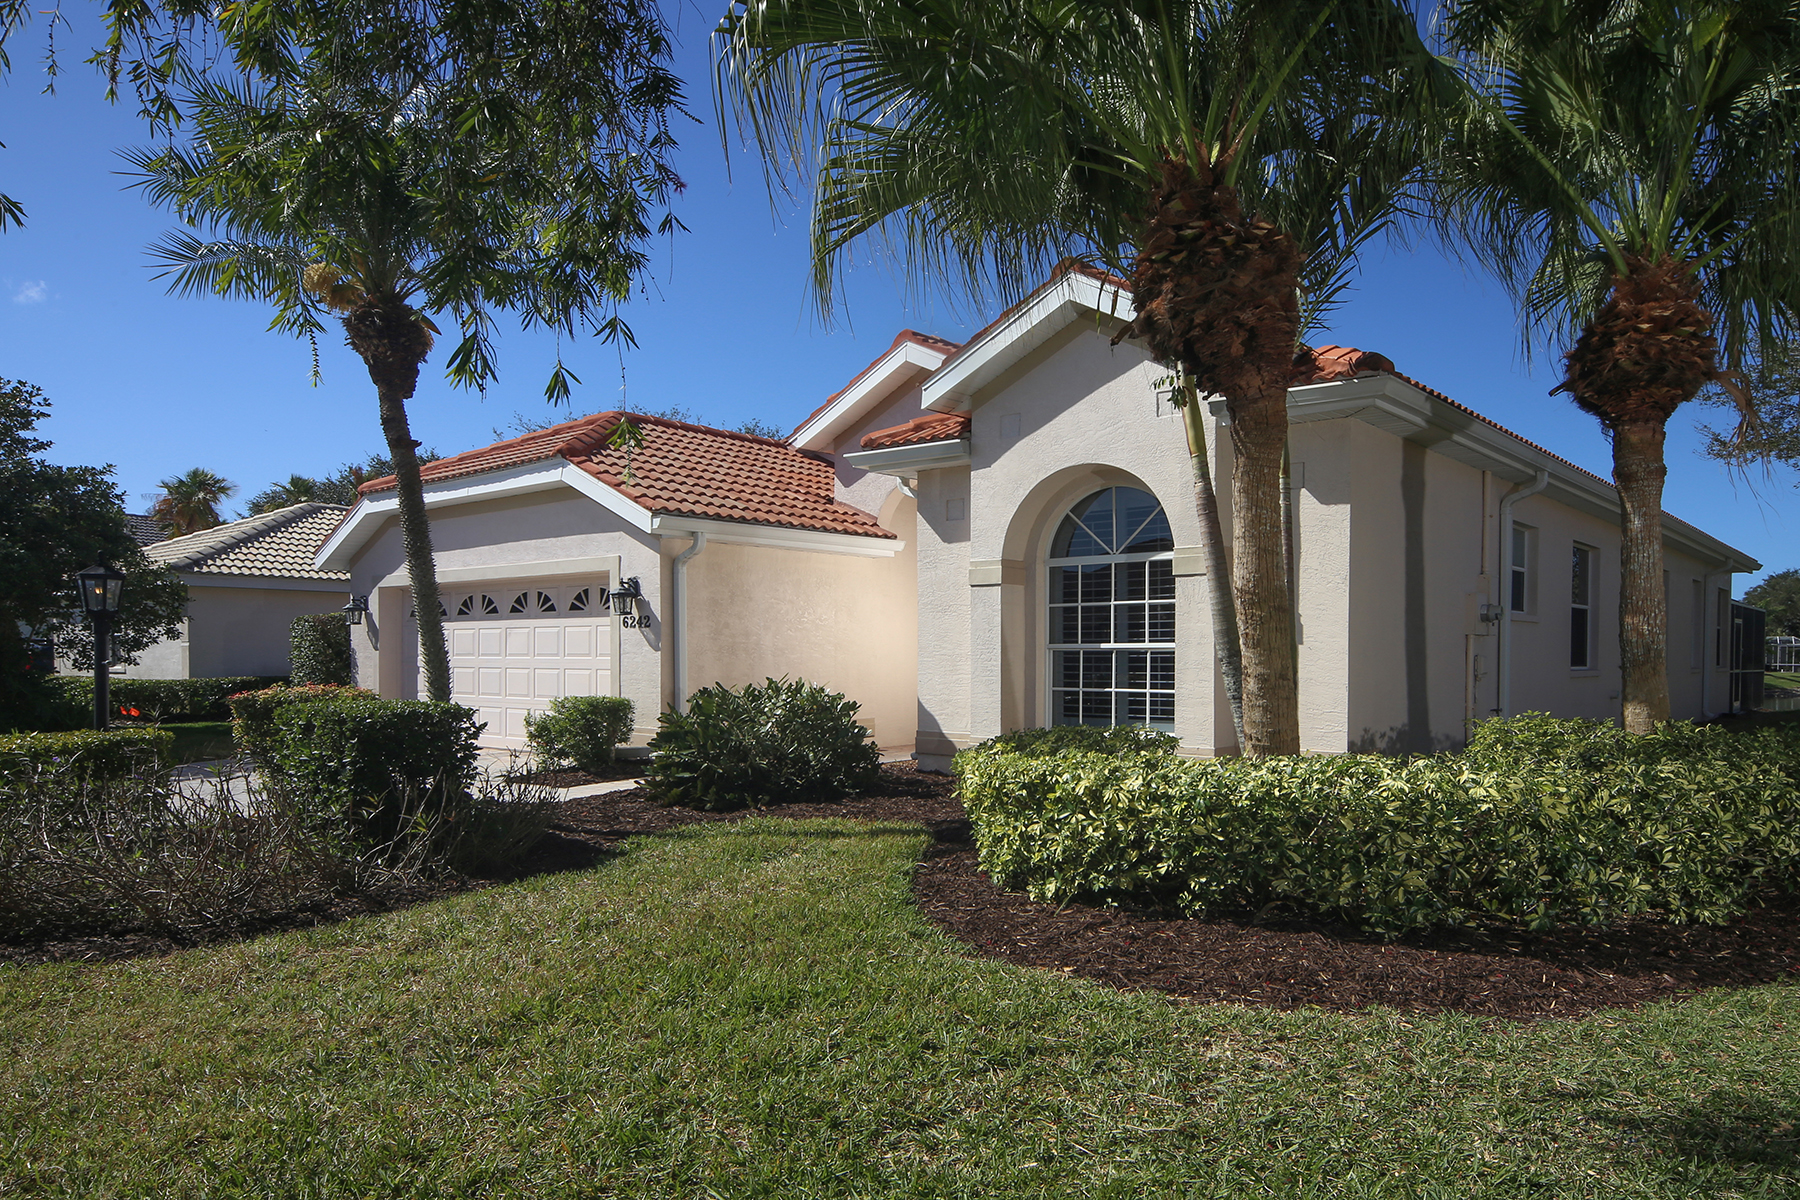 Single Family Home for Sale at THE HAMPTONS 6242 Sturbridge Ct, Sarasota, Florida, 34238 United States